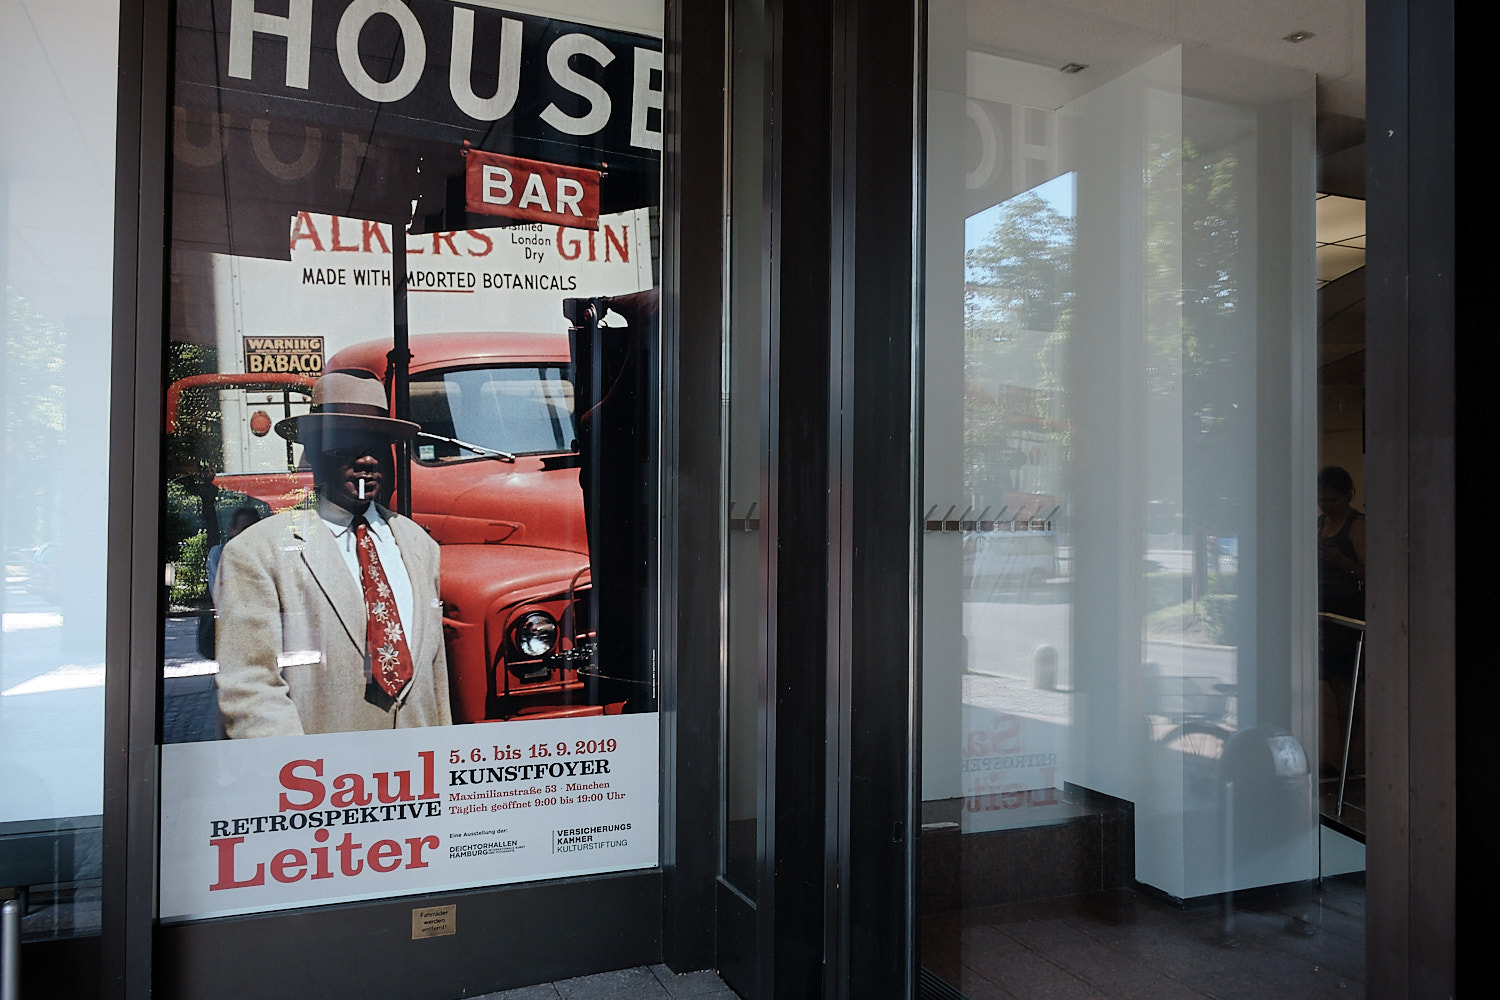 Exposition's poster with photograph of Saul Leiter outside the building